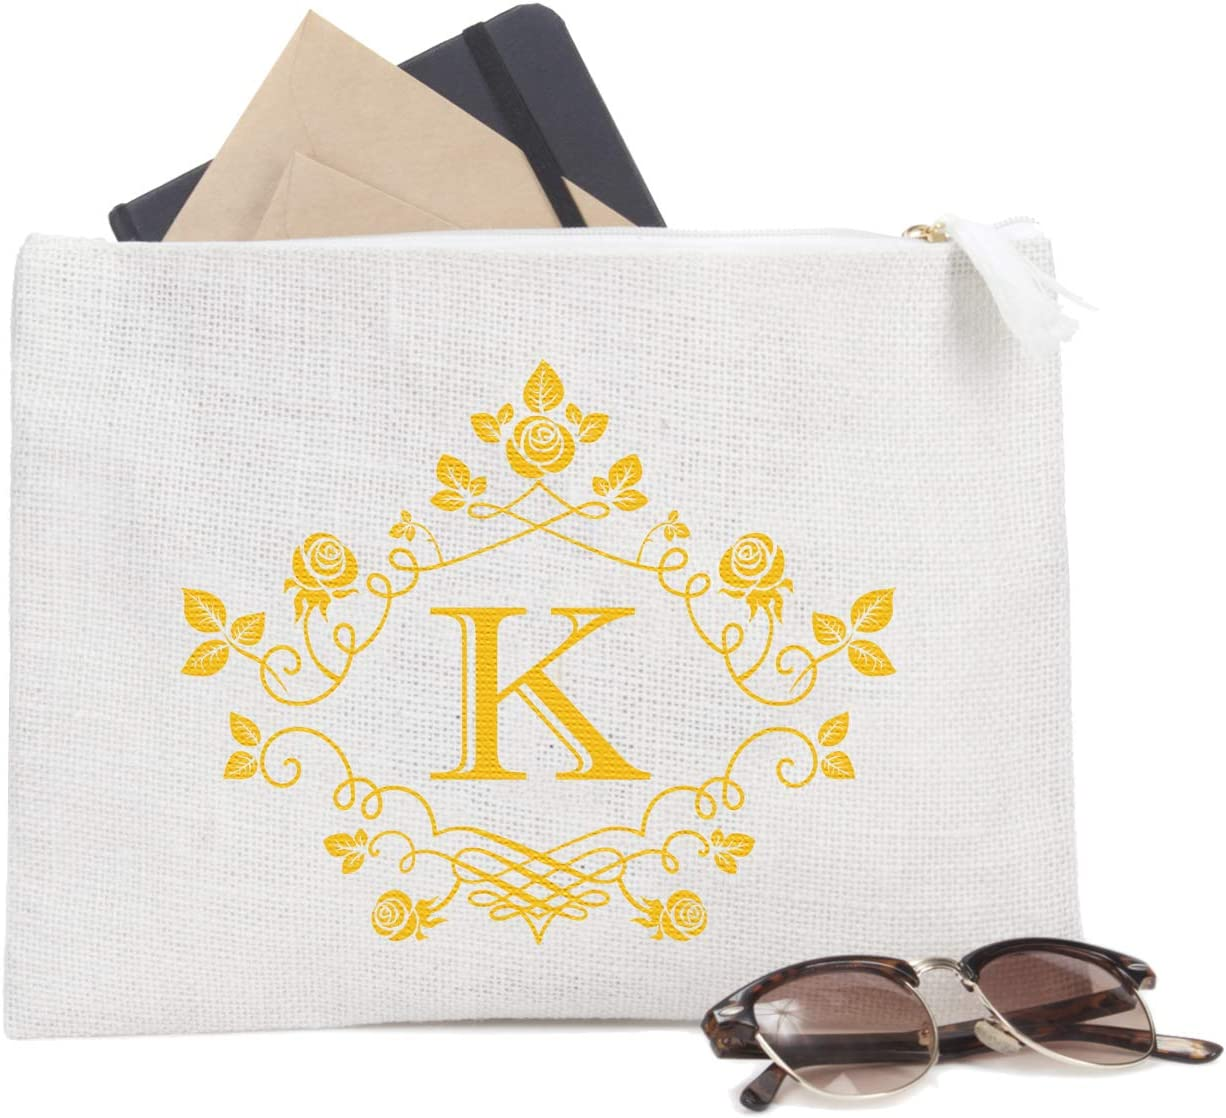 ElegantPark K Initial Monogram Personalized Travel Makeup Cosmetic Bag Jute Clutch Pouch Gifts with Zipper